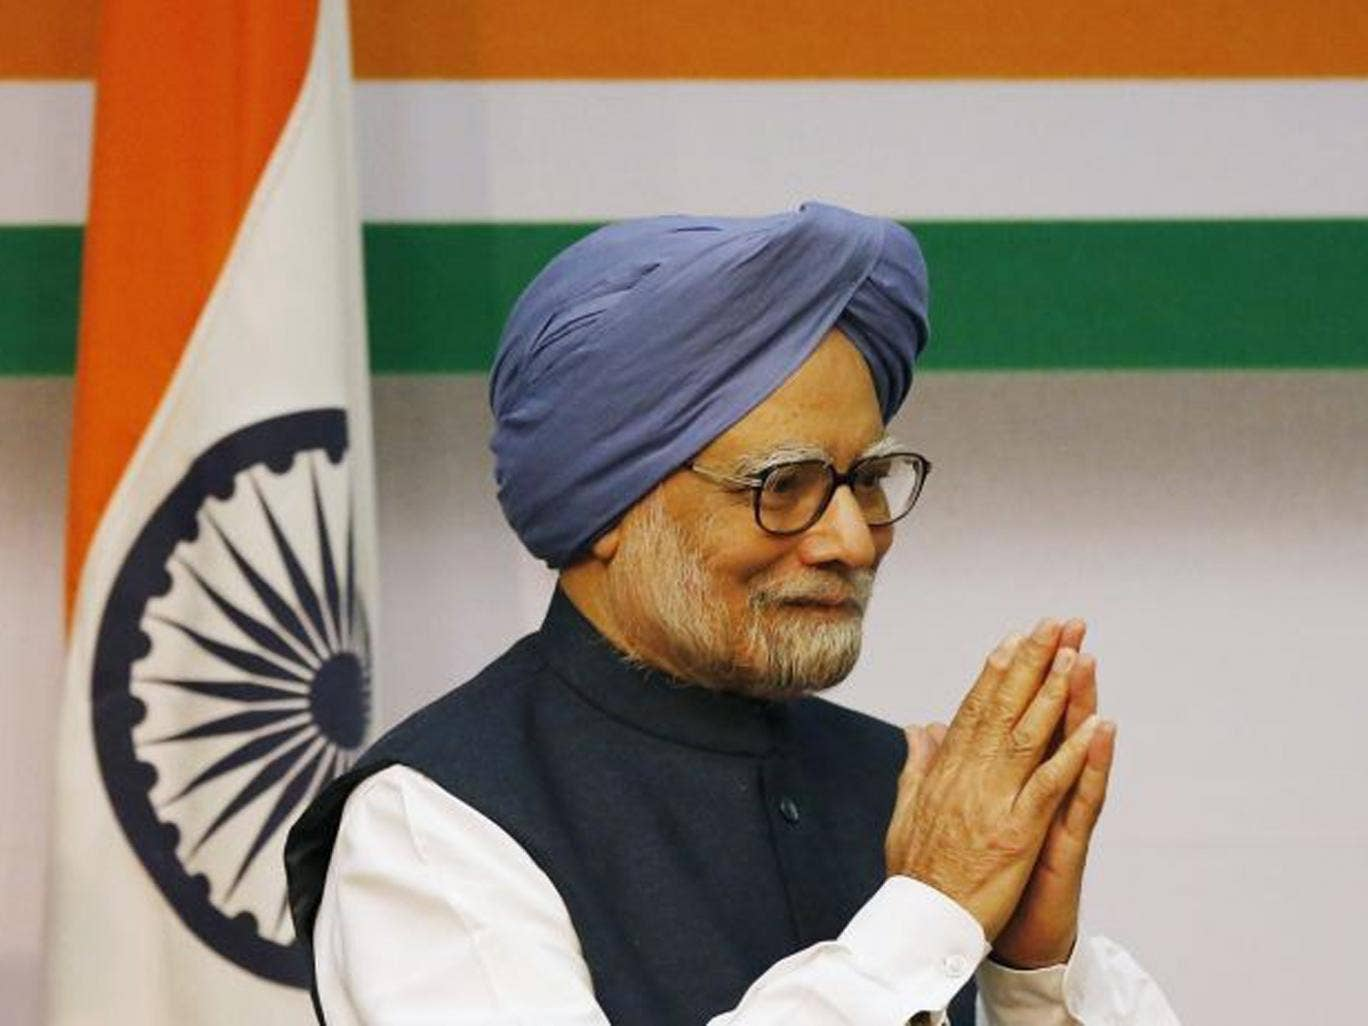 The Indian Prime Minster Manmohan Singh says he will step aside after 10 years in office